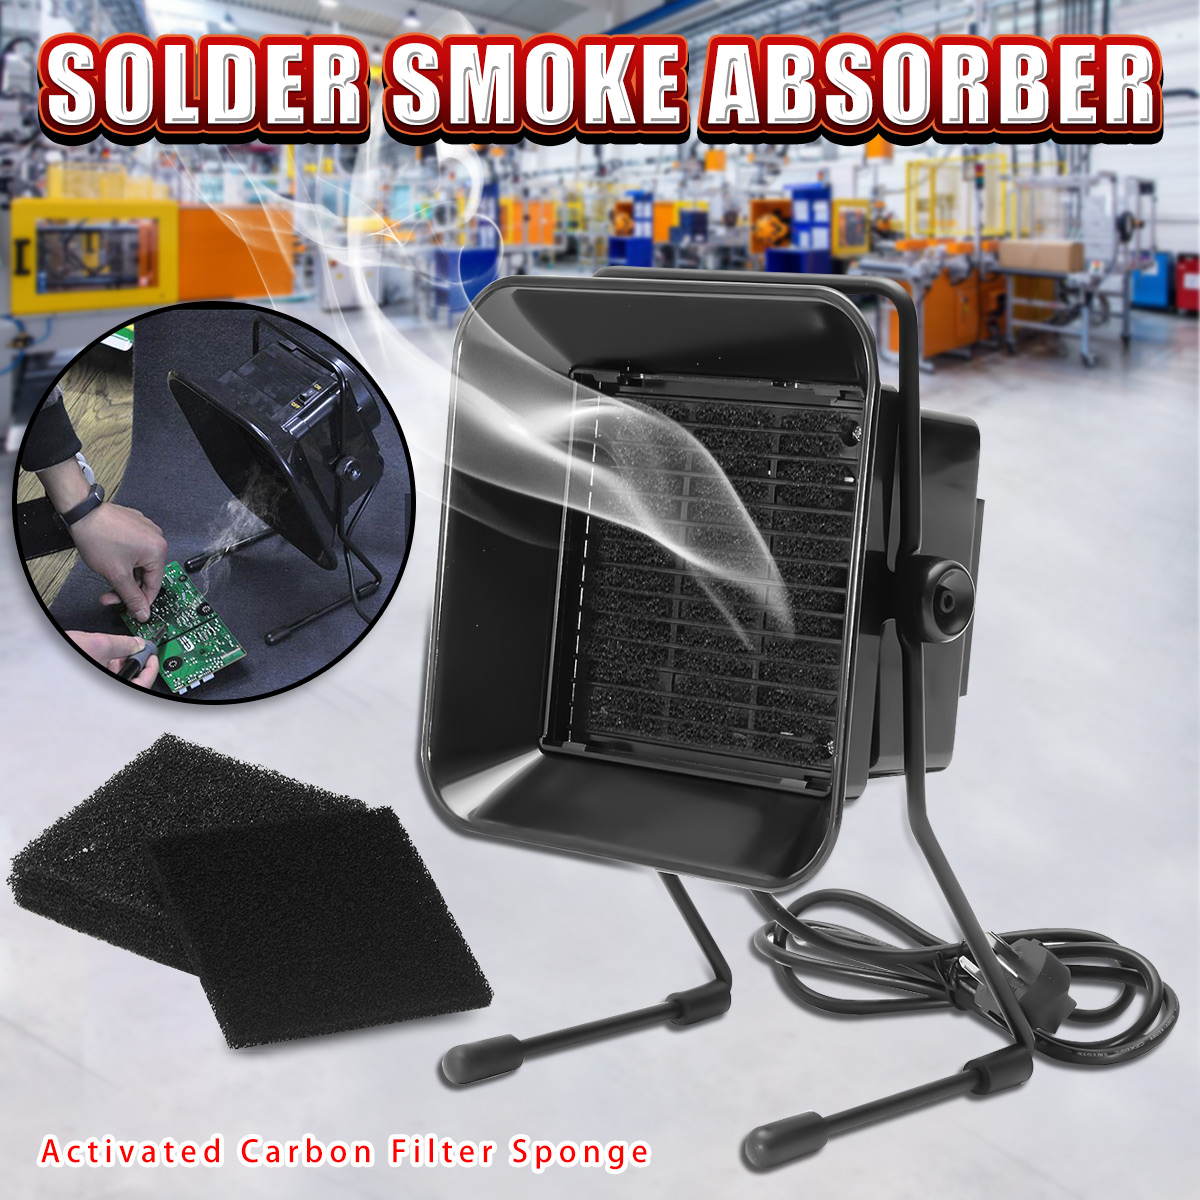 220V 16W Portable Solder Smoke Absorber ESD Fume Extractor for Soldering Iron Work Soldering Smoking Fan with Filter Sponge|Electric Soldering Irons| - AliExpress